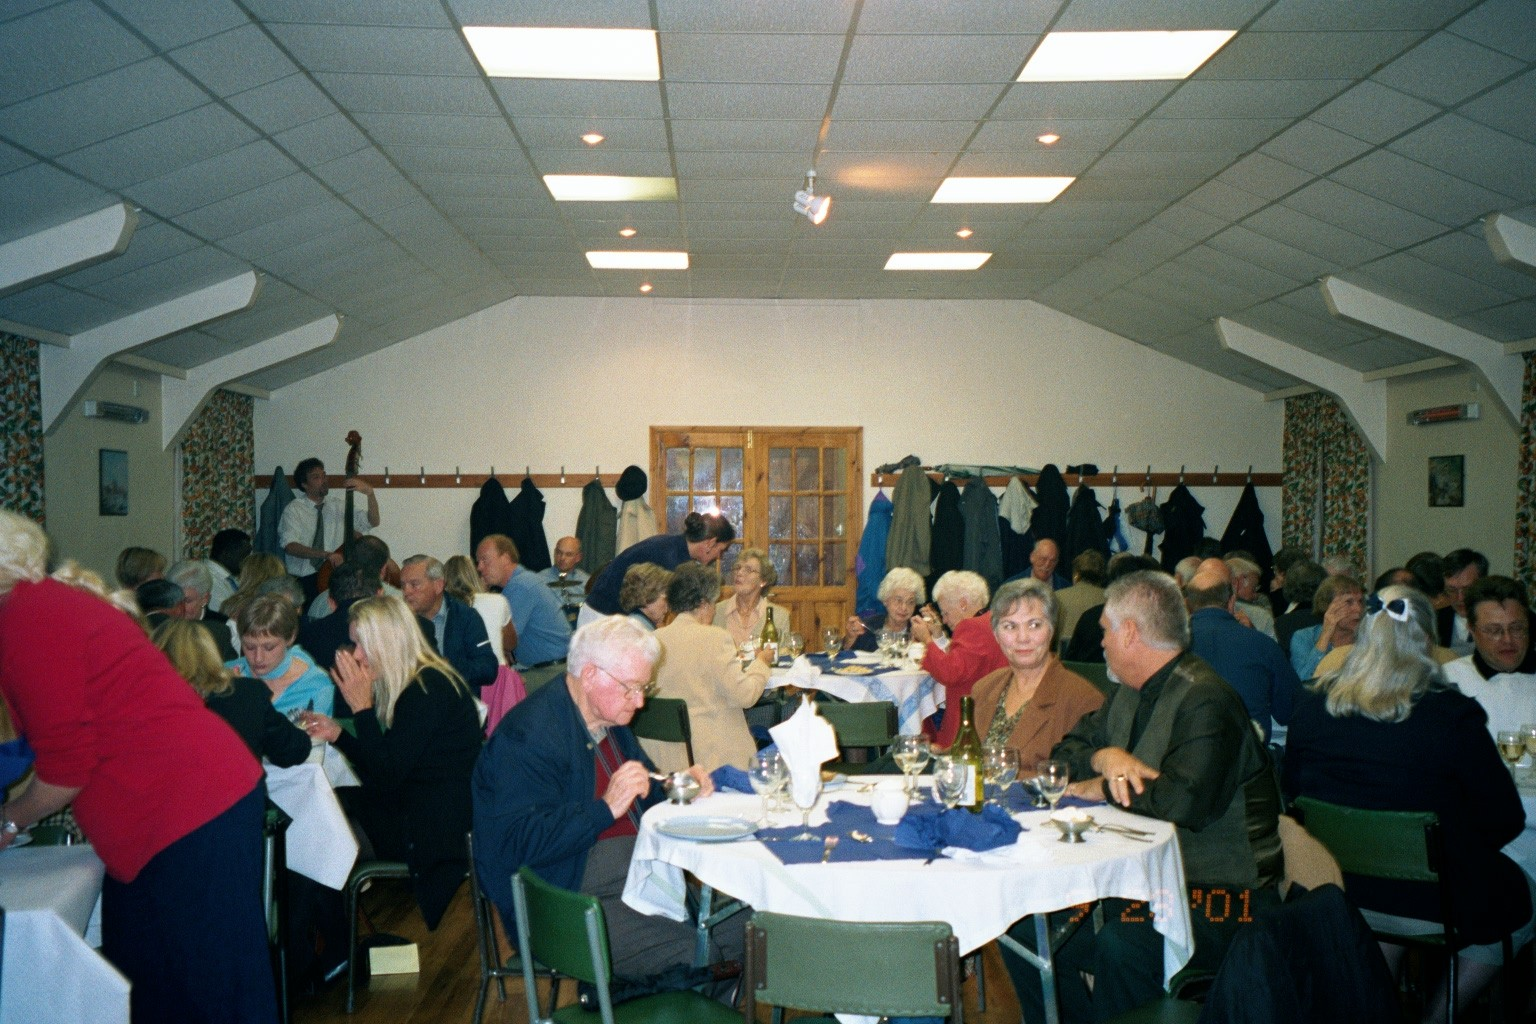 2001 OFHS England Tour - Glooston Church Dinner